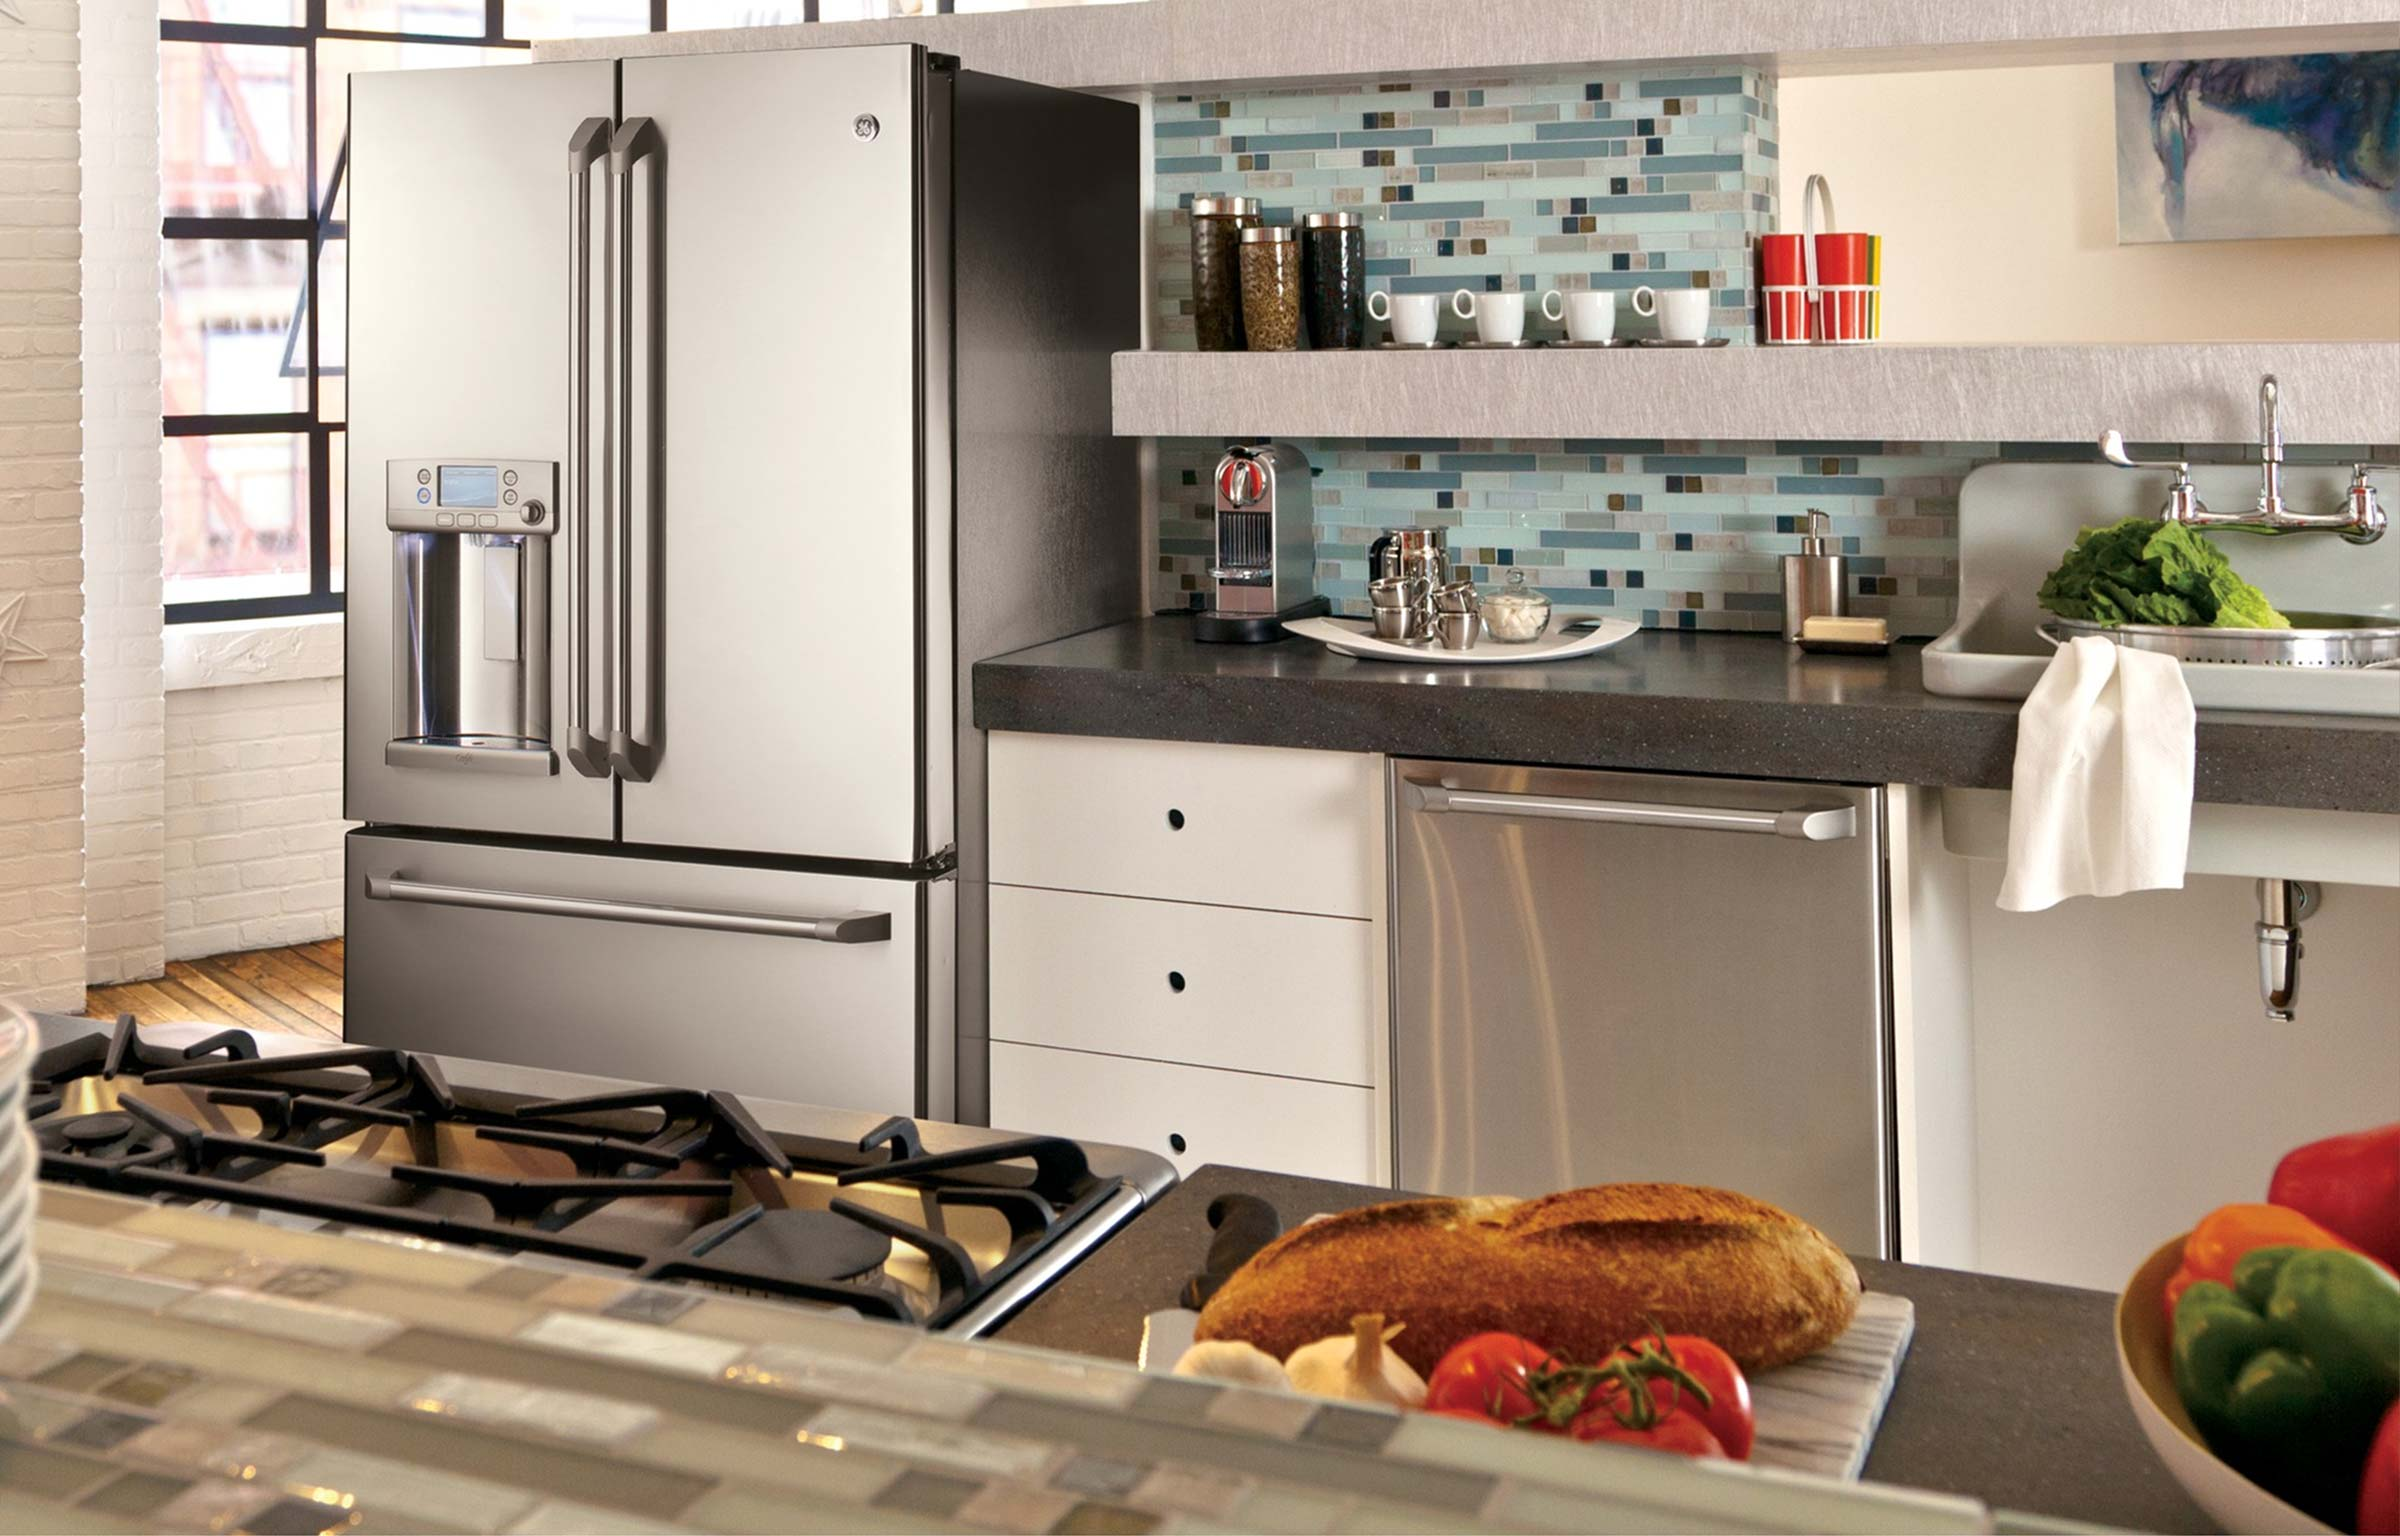 slate vs. stainless steel | kitchen design blog